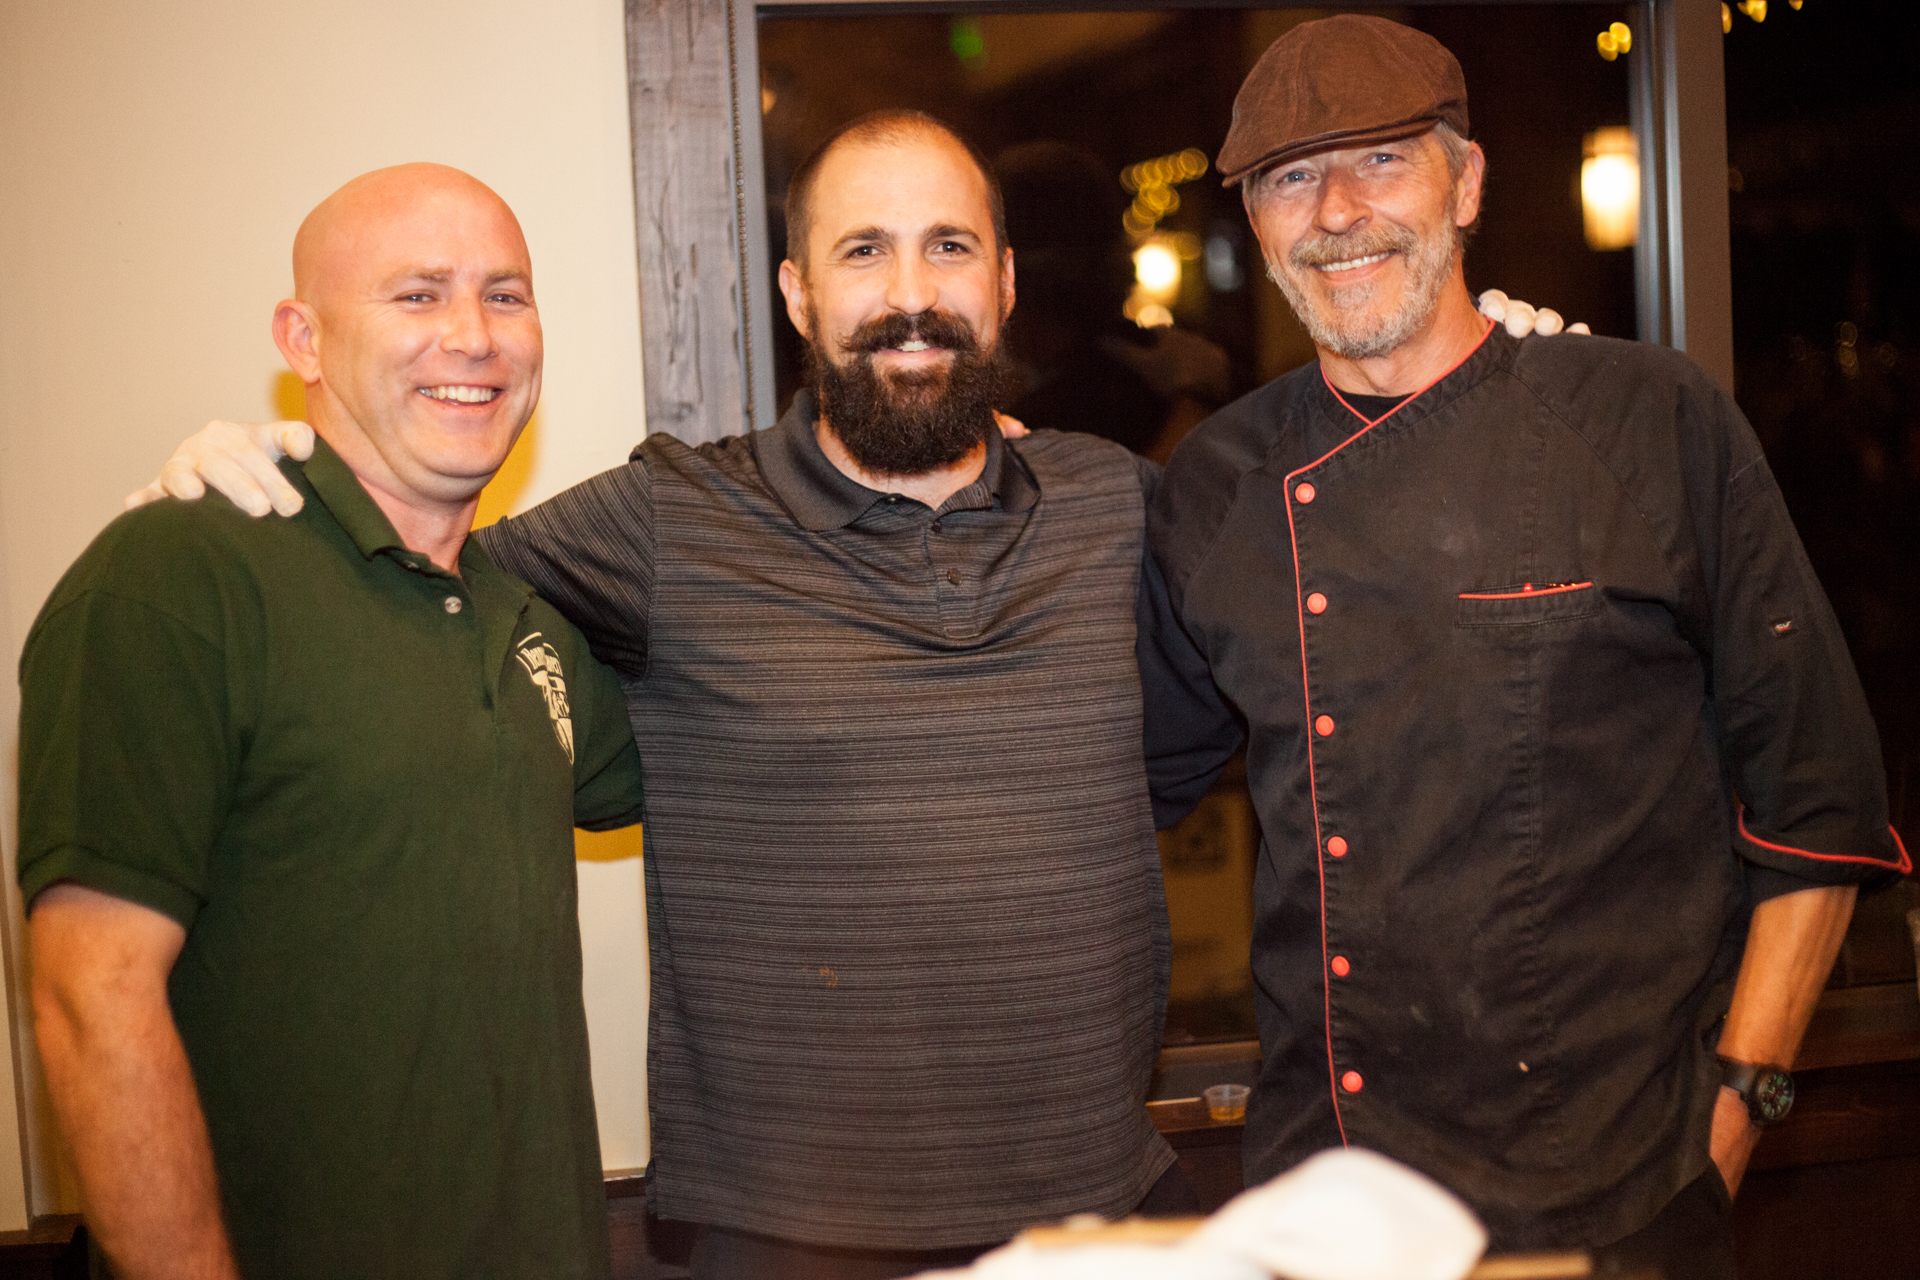 (From left) General manager Mike Soleri, cook Tommy O'Rafferty, and chef John Byrne, of Hennessey's Tavern, served chili to guests. Photo: Alex Paris